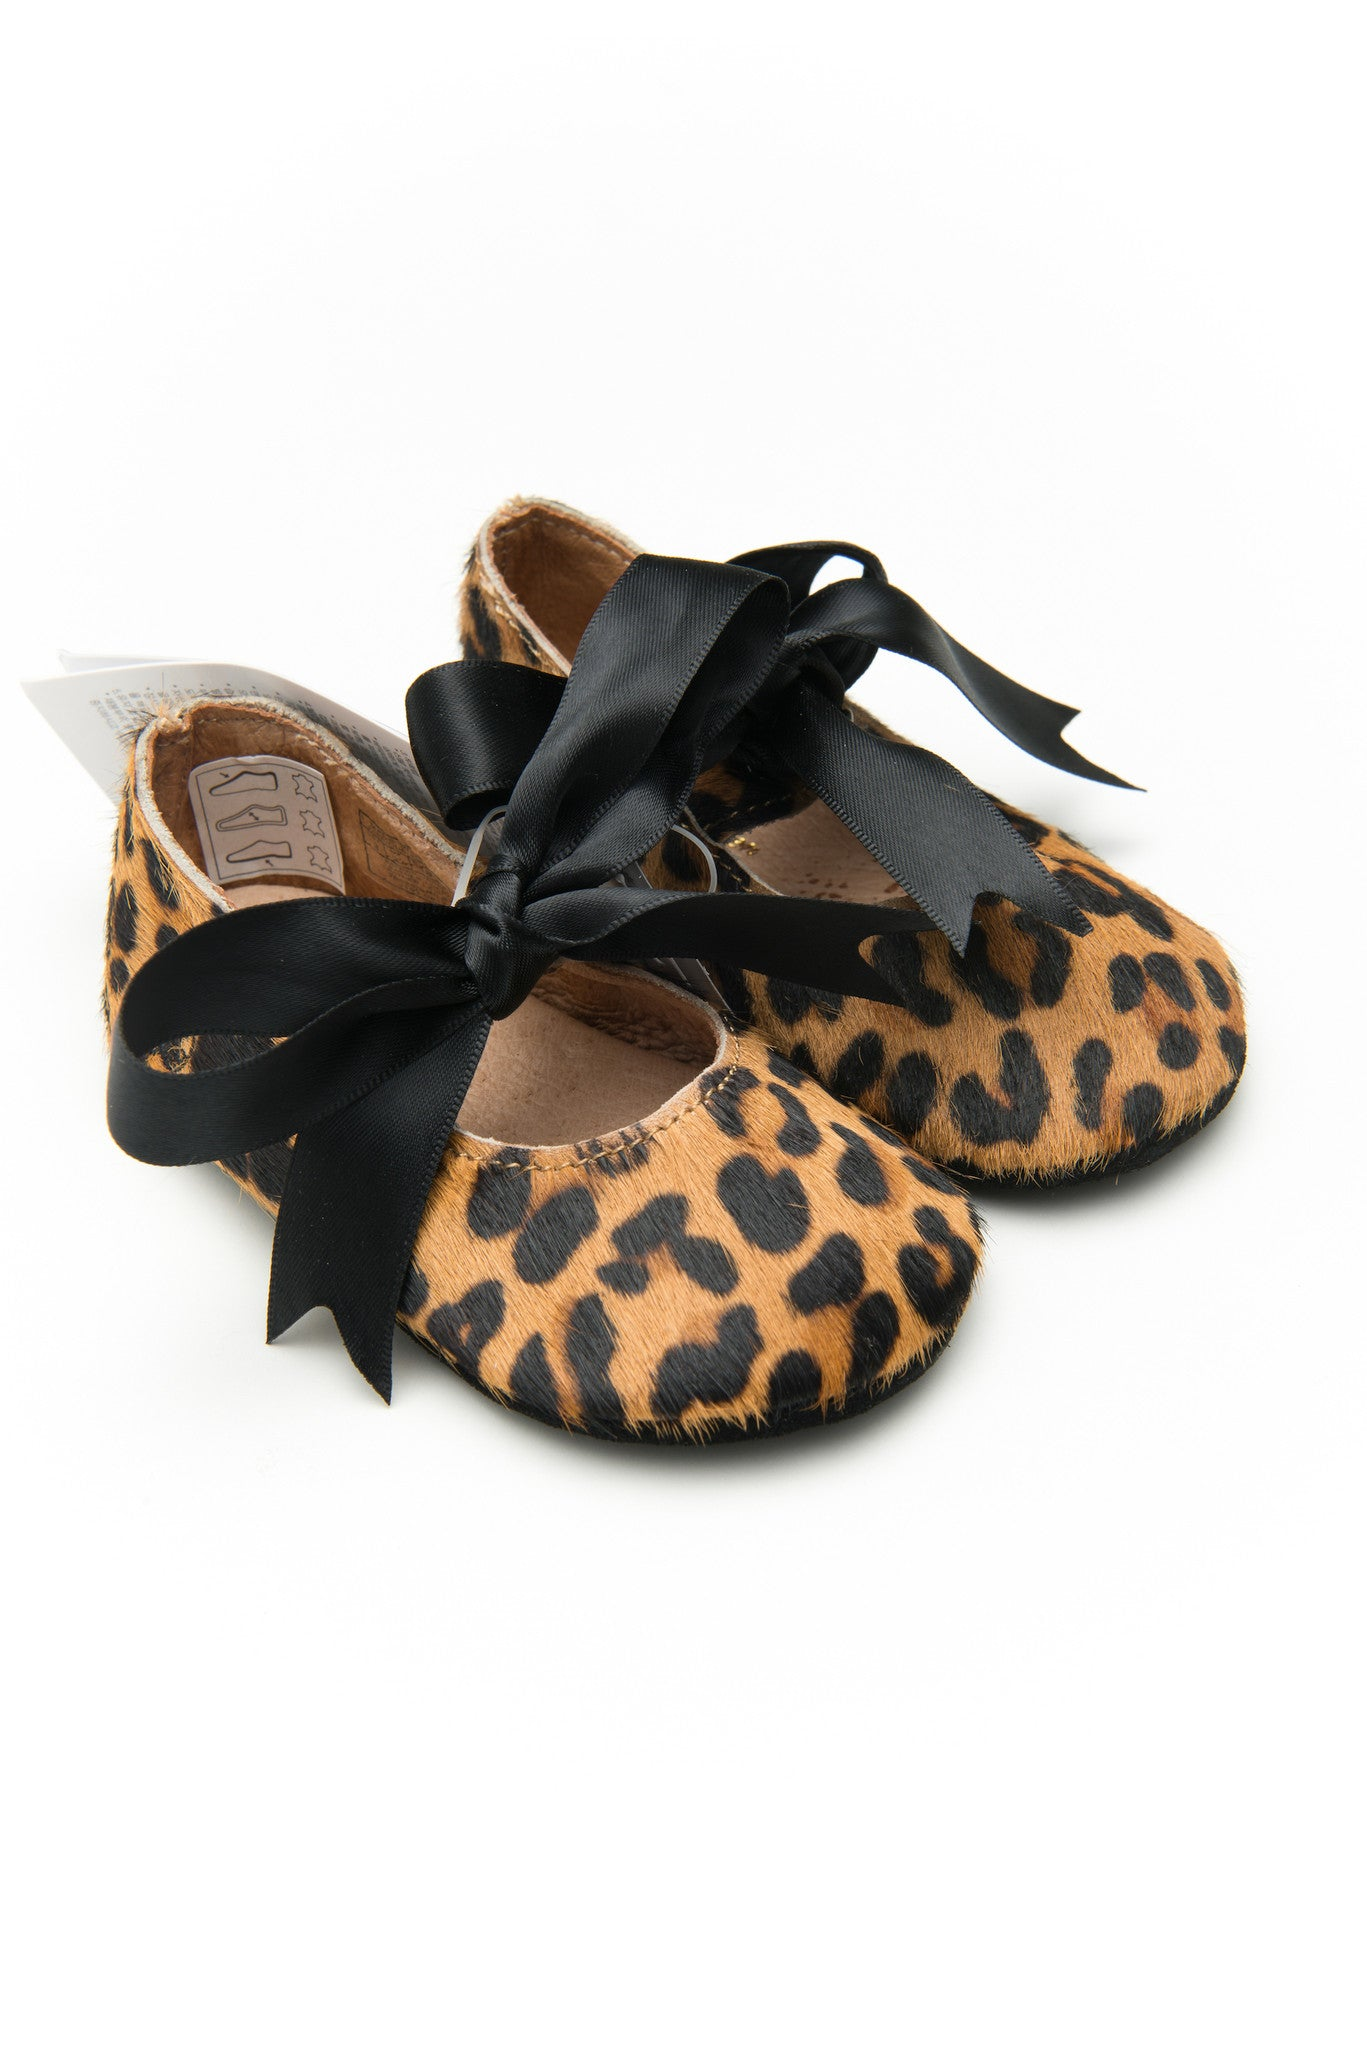 10001307 Ralph Lauren Baby~Shoes 6-12M at Retykle